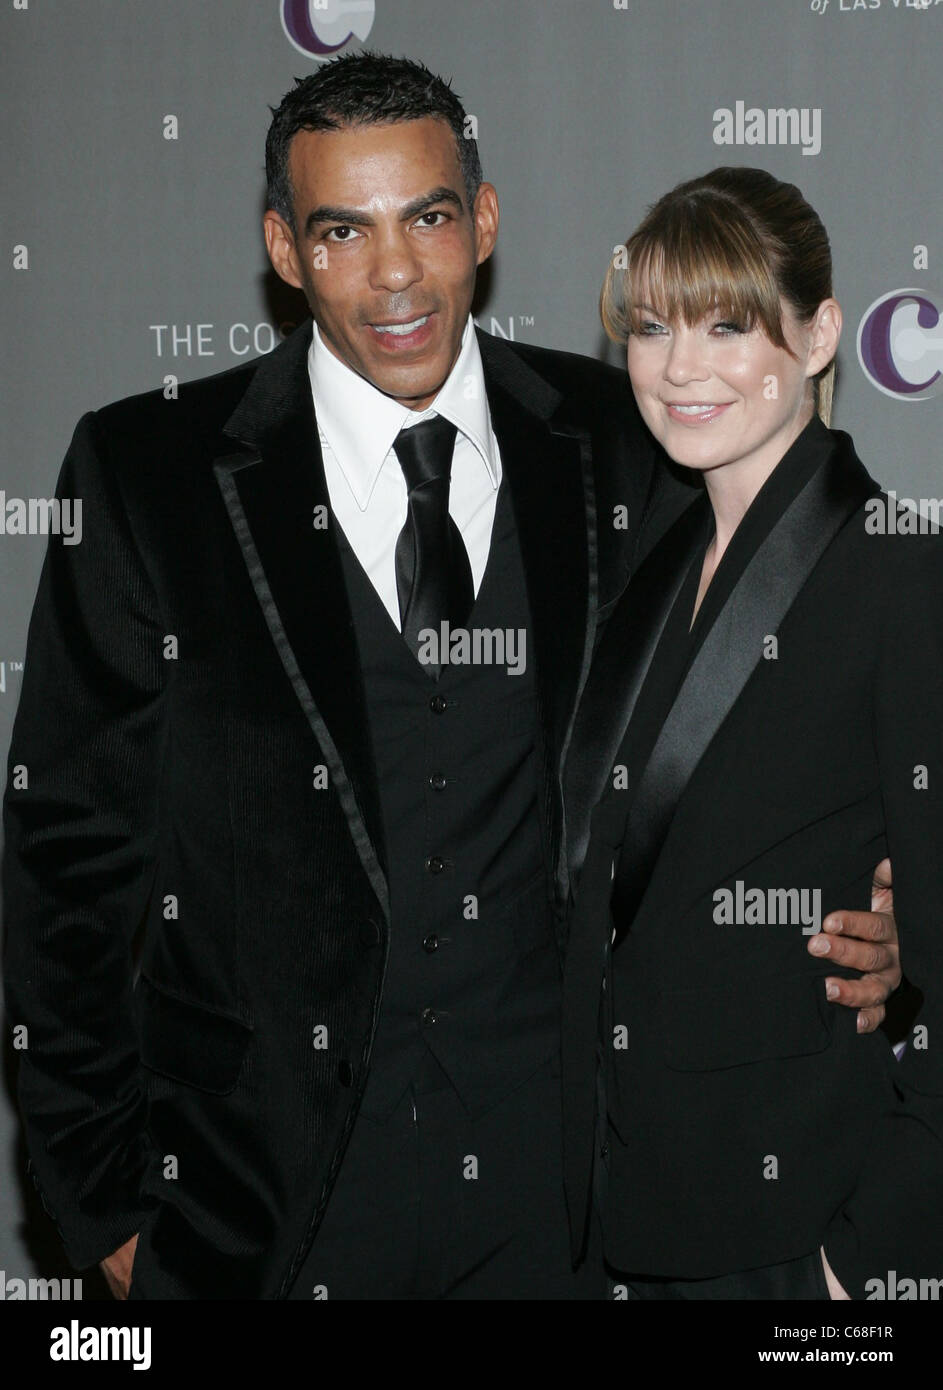 Chris Ivery -- Ellen Pompeo and hubby expecting first